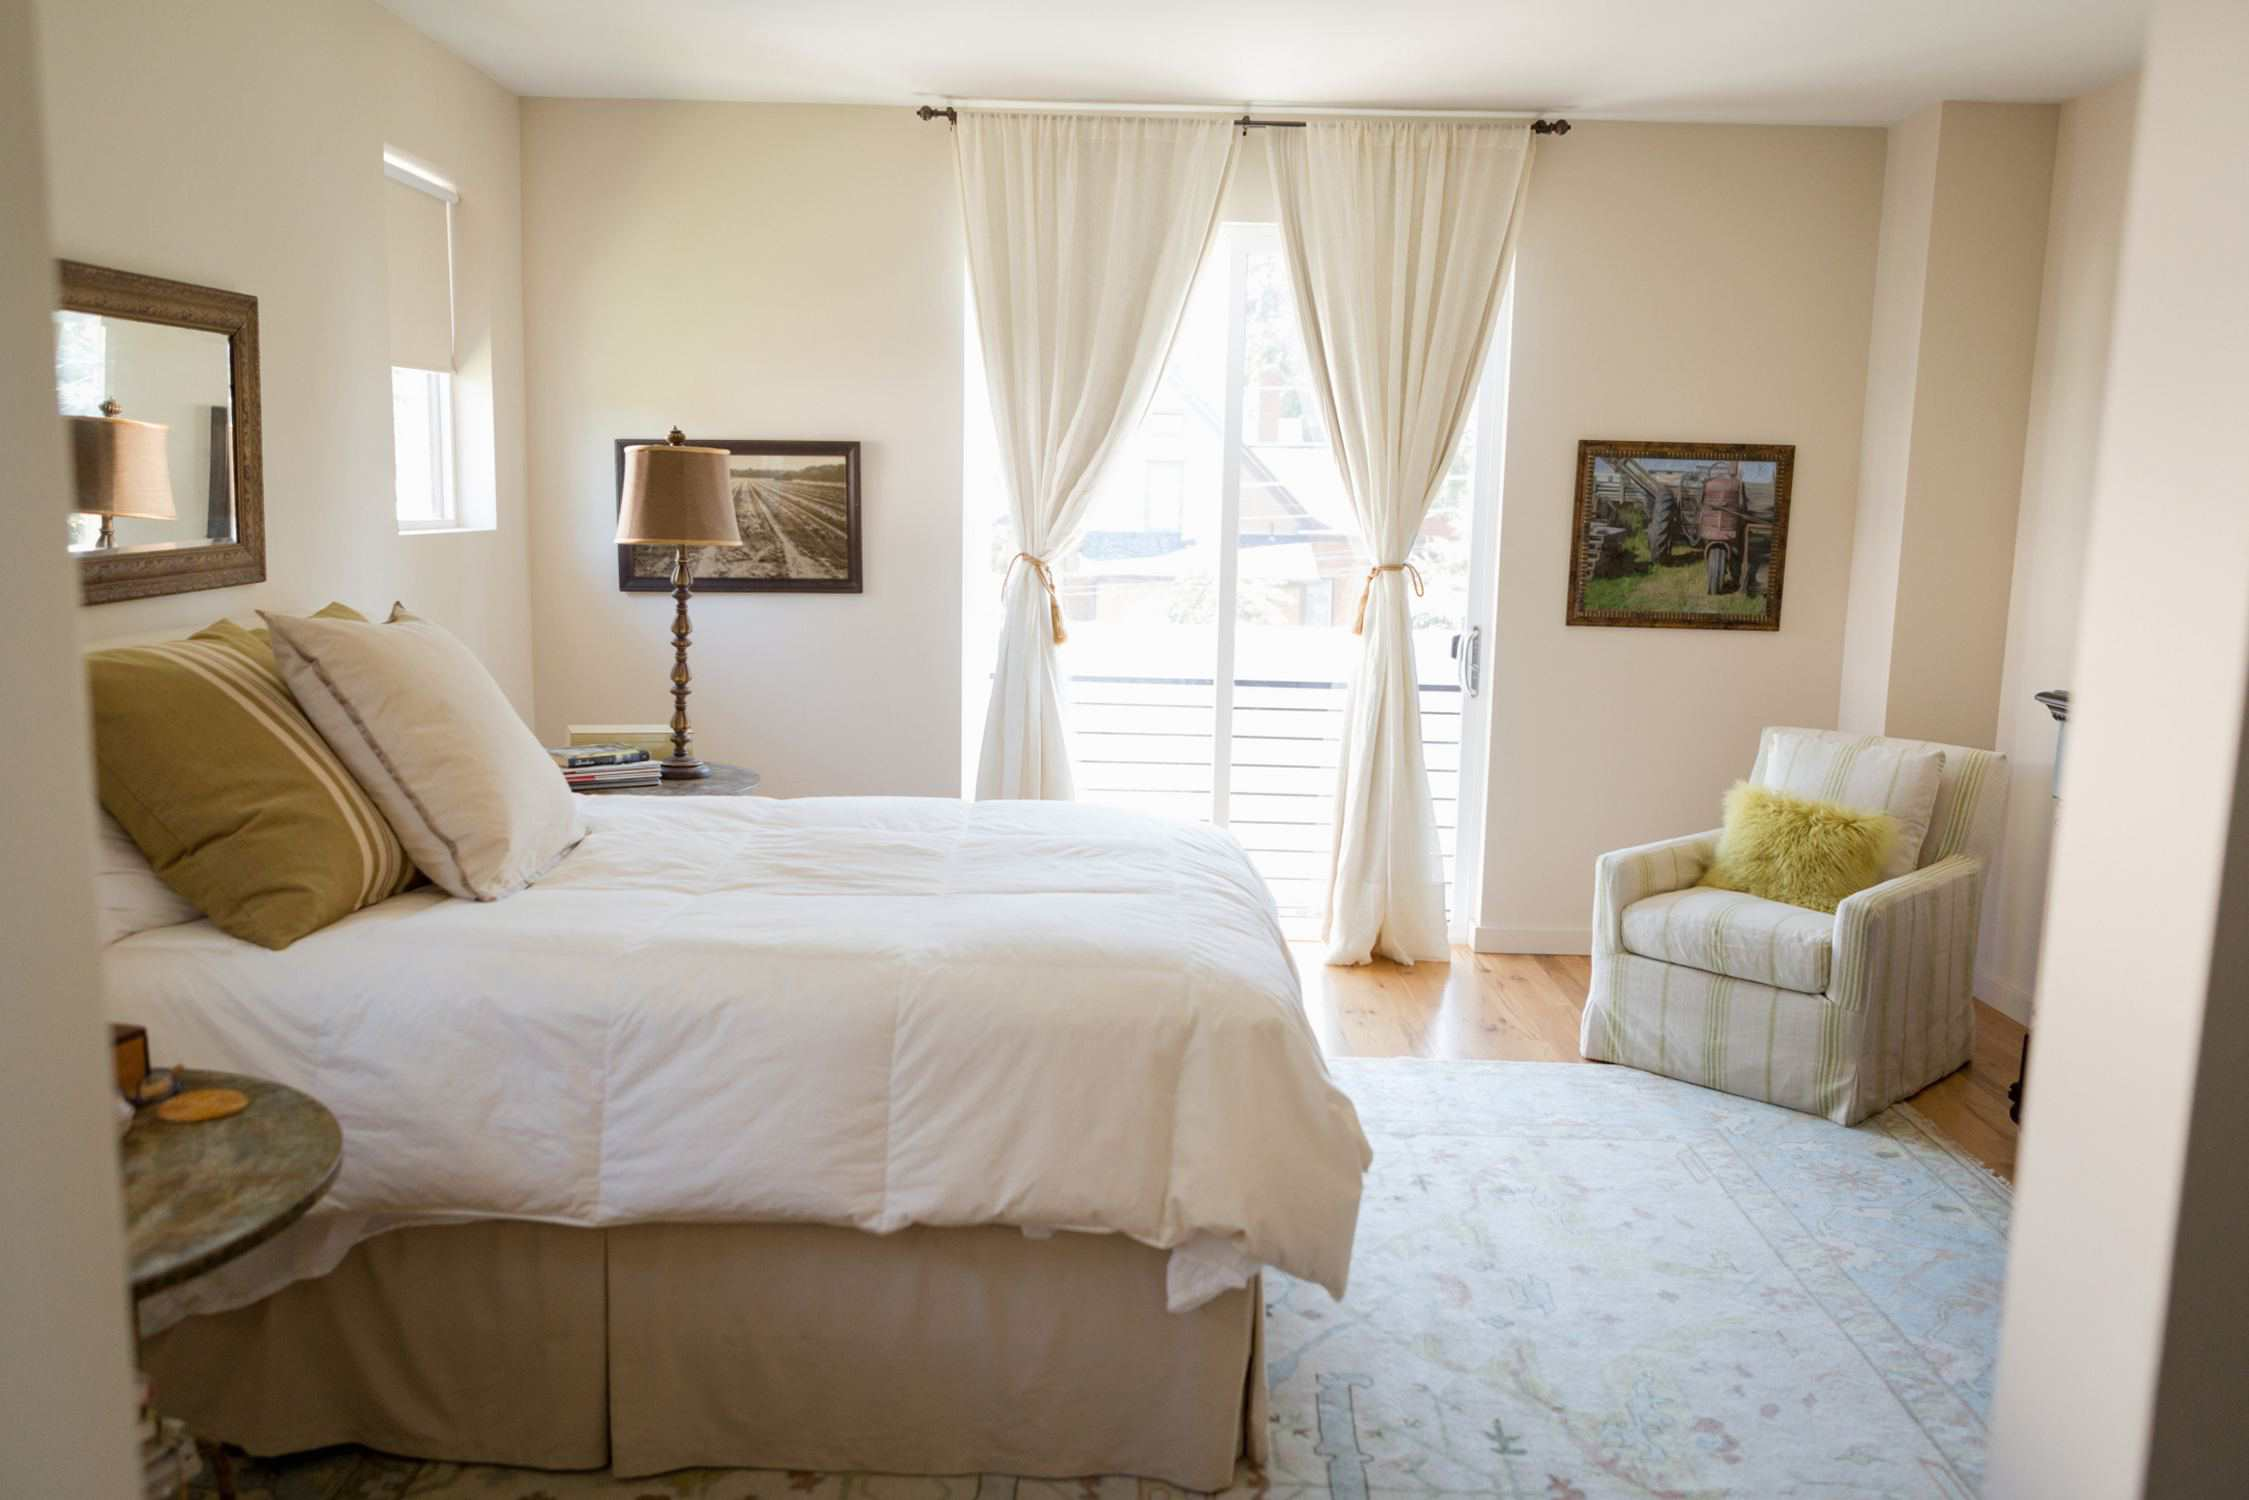 How to Organize Every Room in Your Home